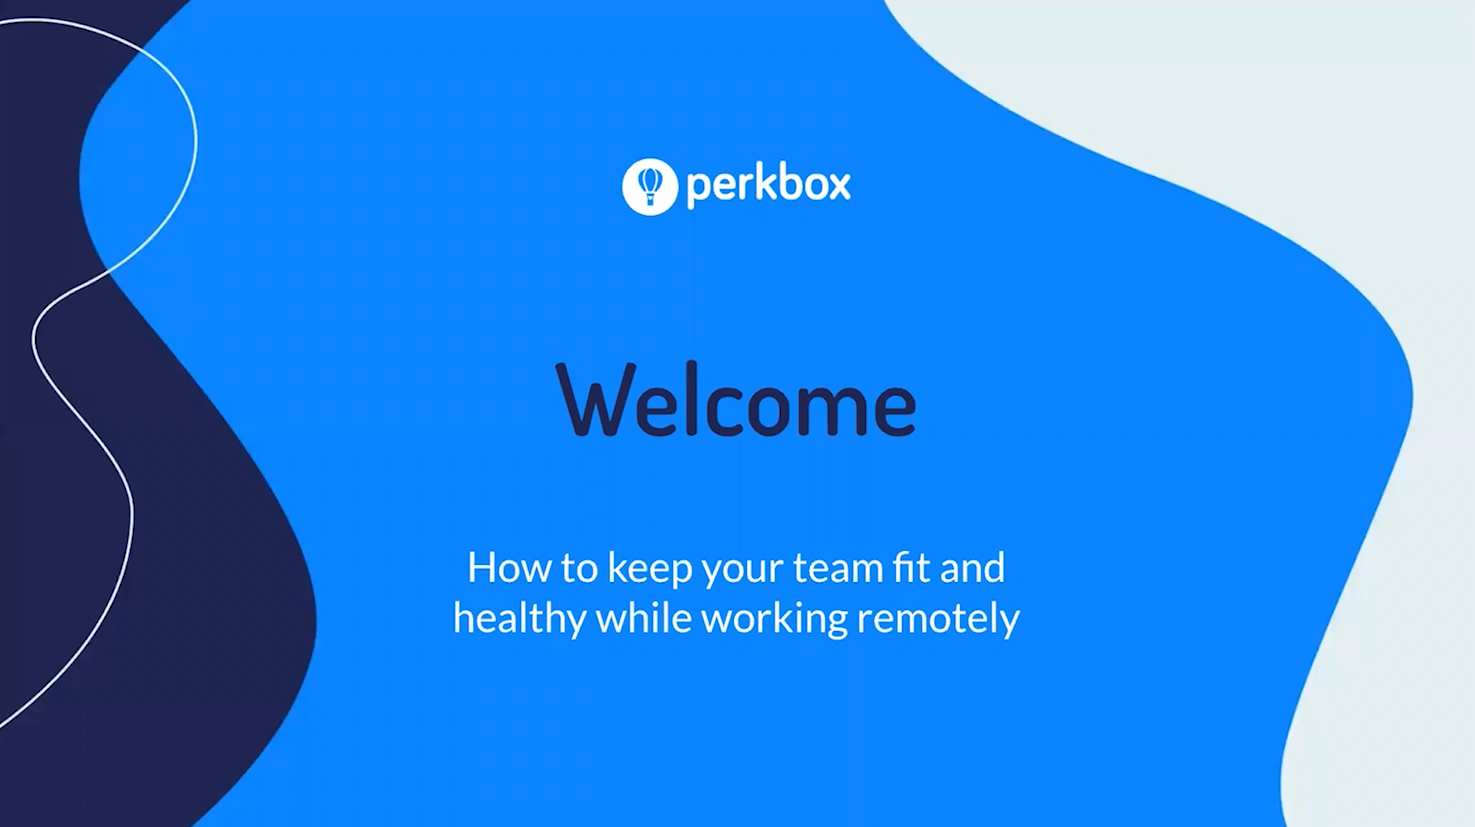 Free webinar: How to keep your team fit and healthy while working remotely